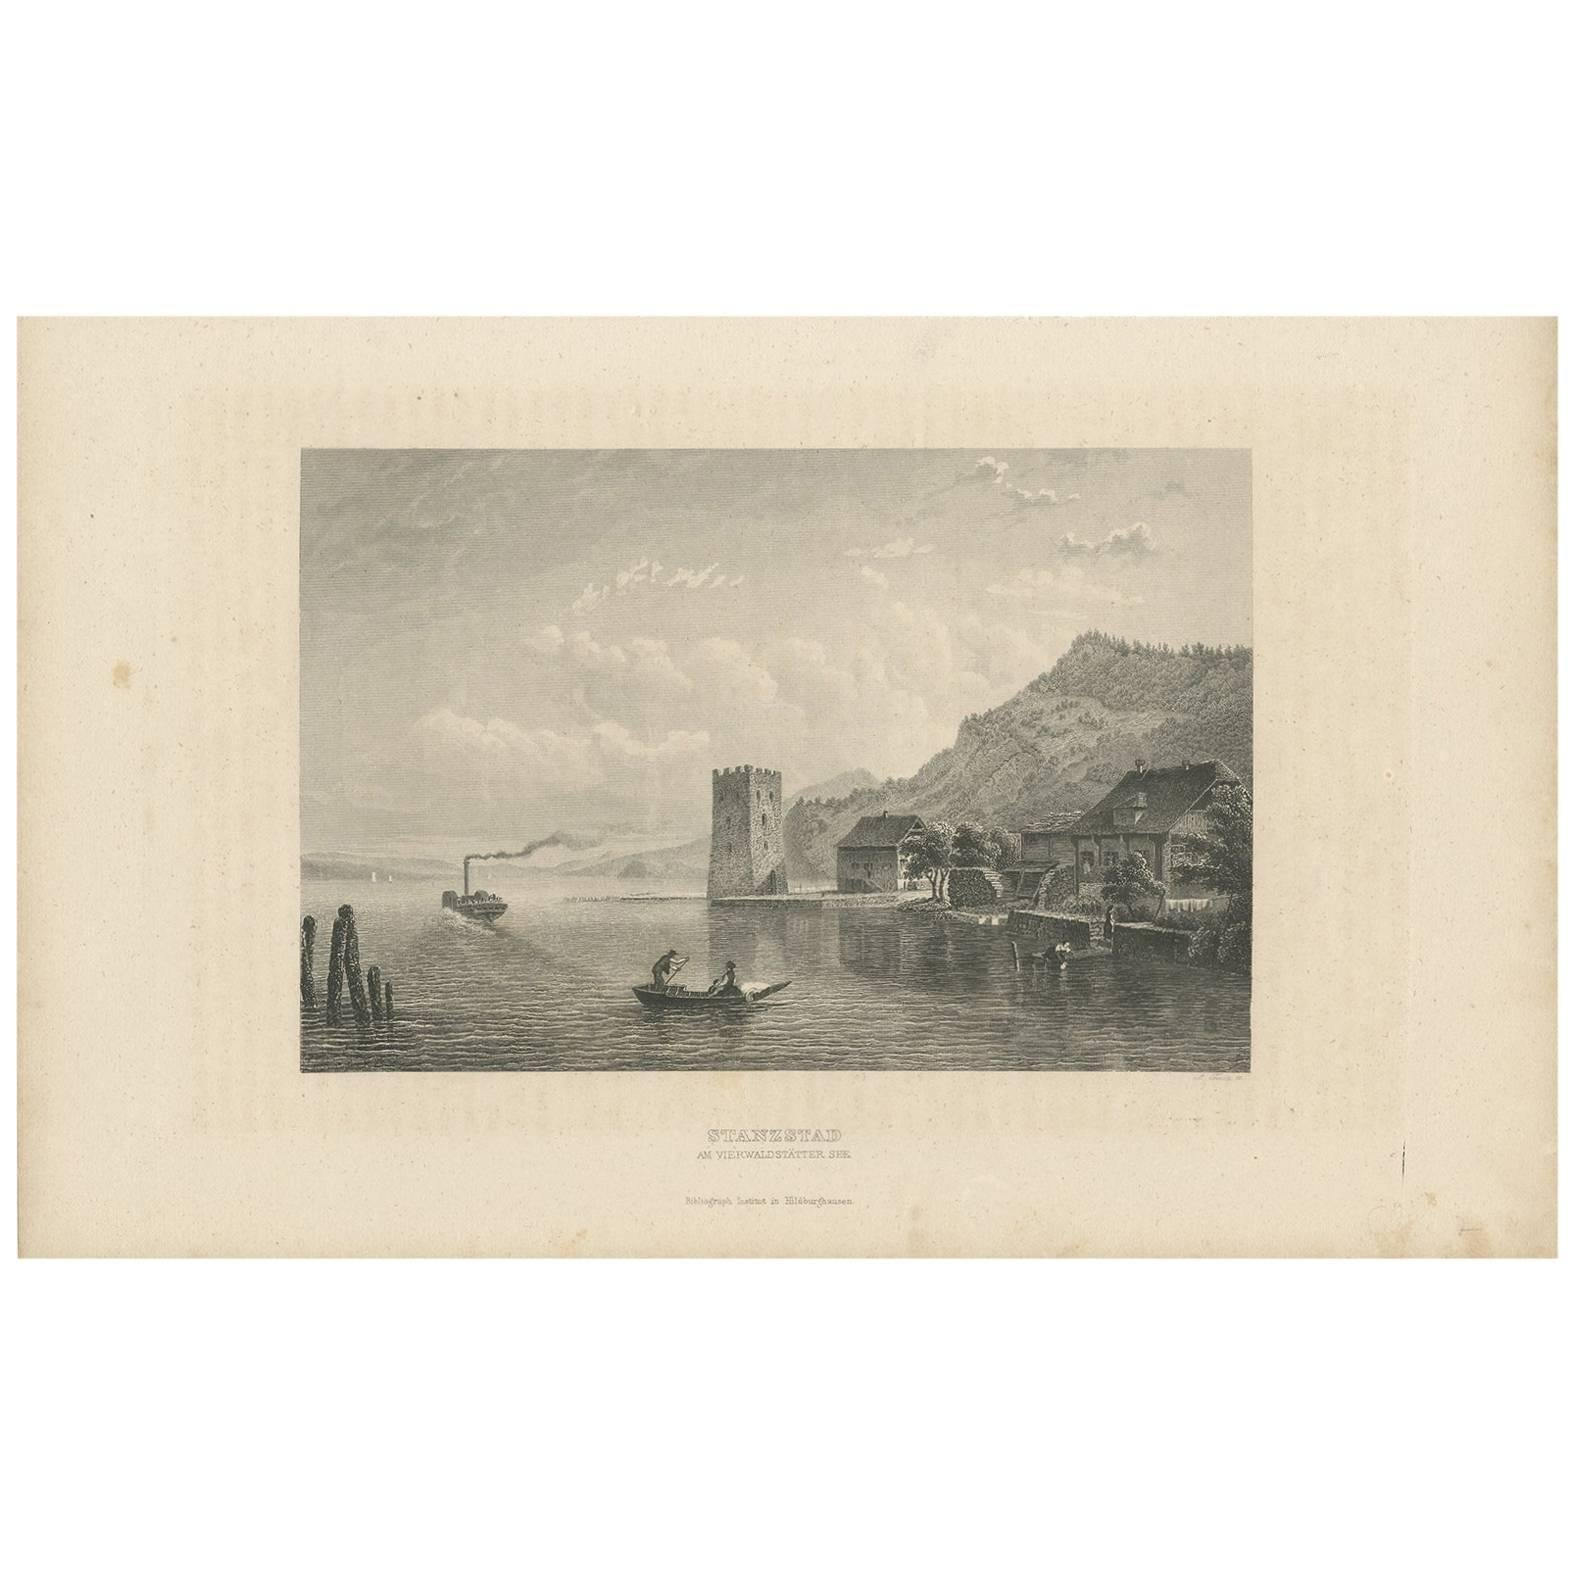 Antique Print of Stansstad 'Switzerland' by A. Fesca, circa 1860